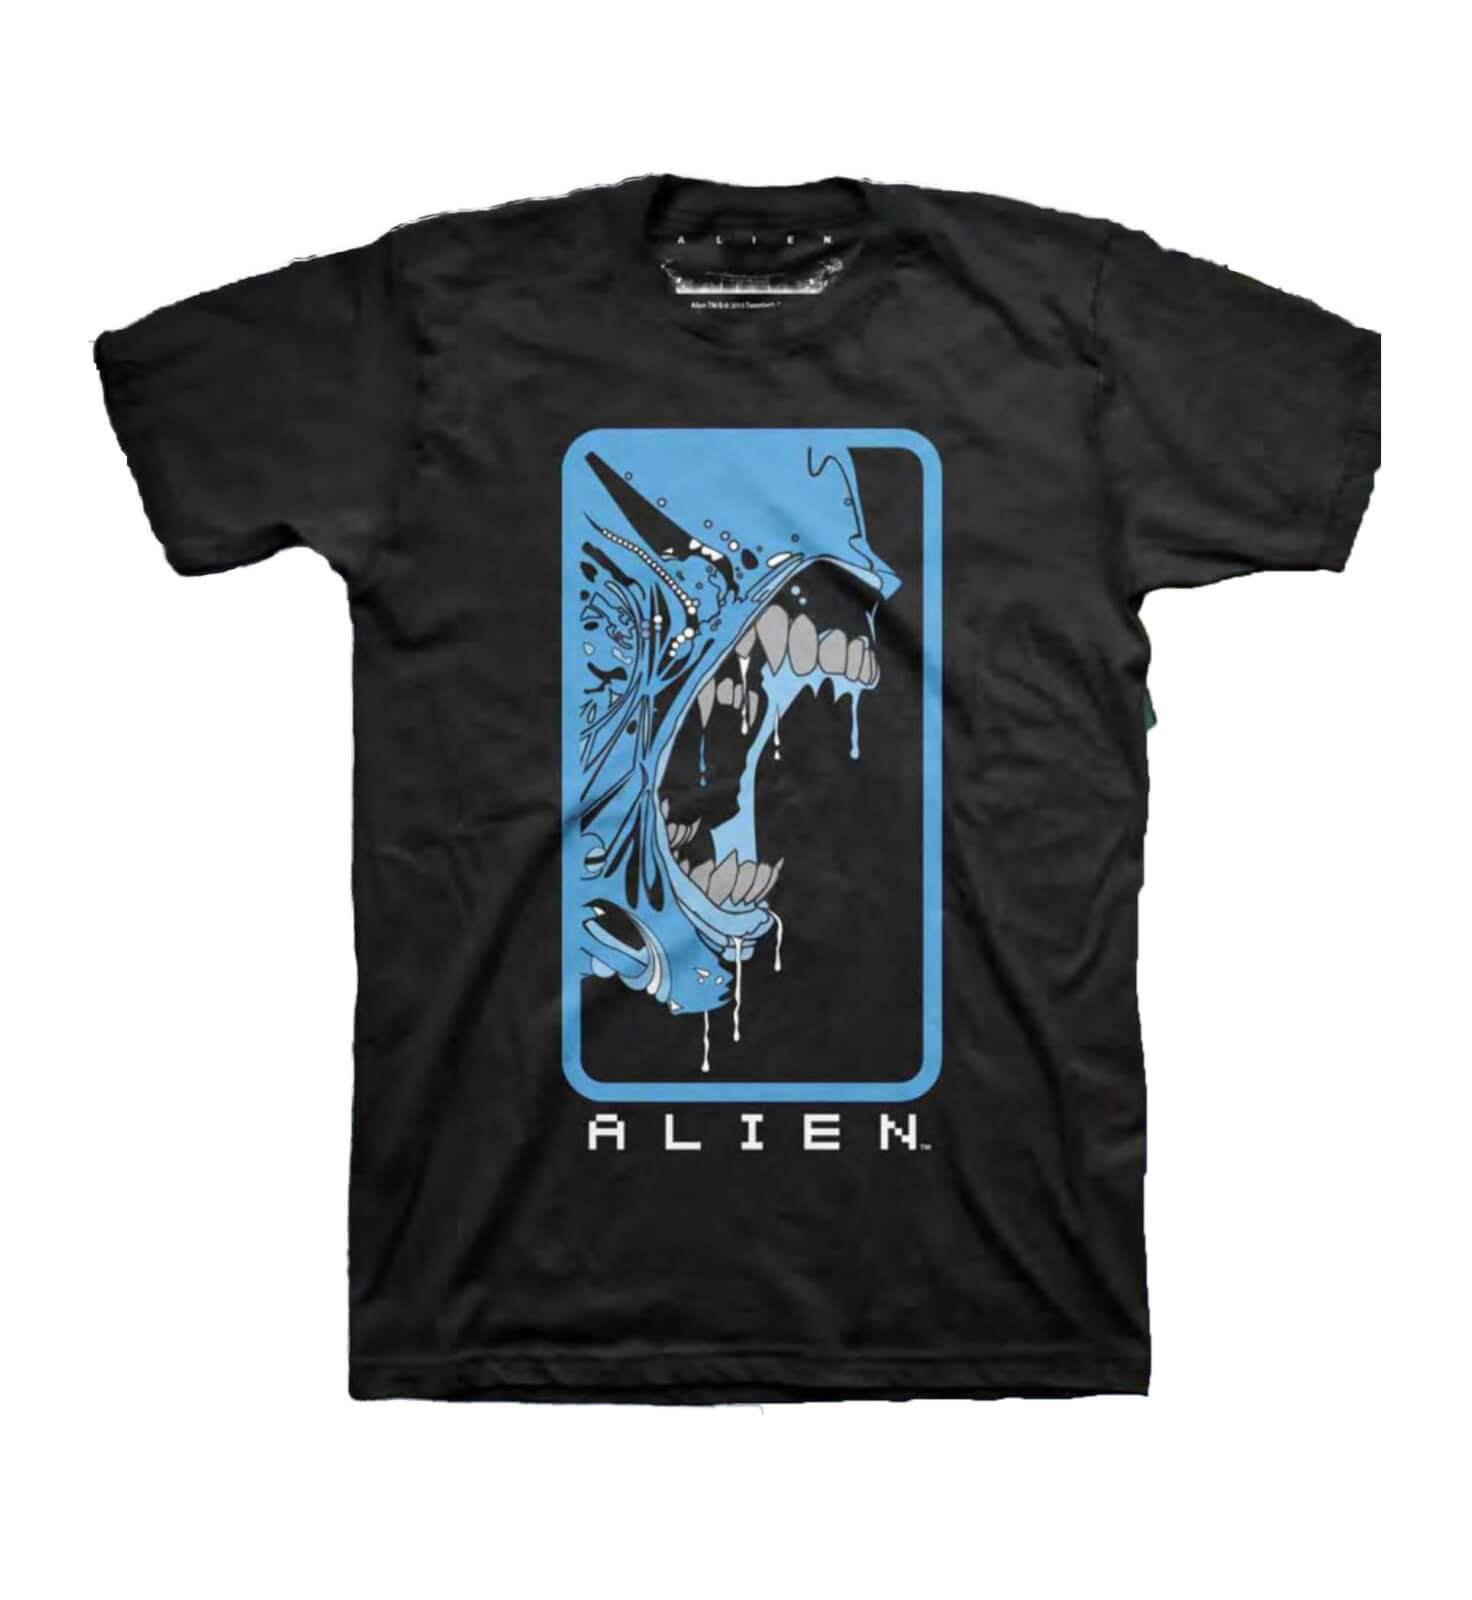 Alien Bluescale Retro Print Men